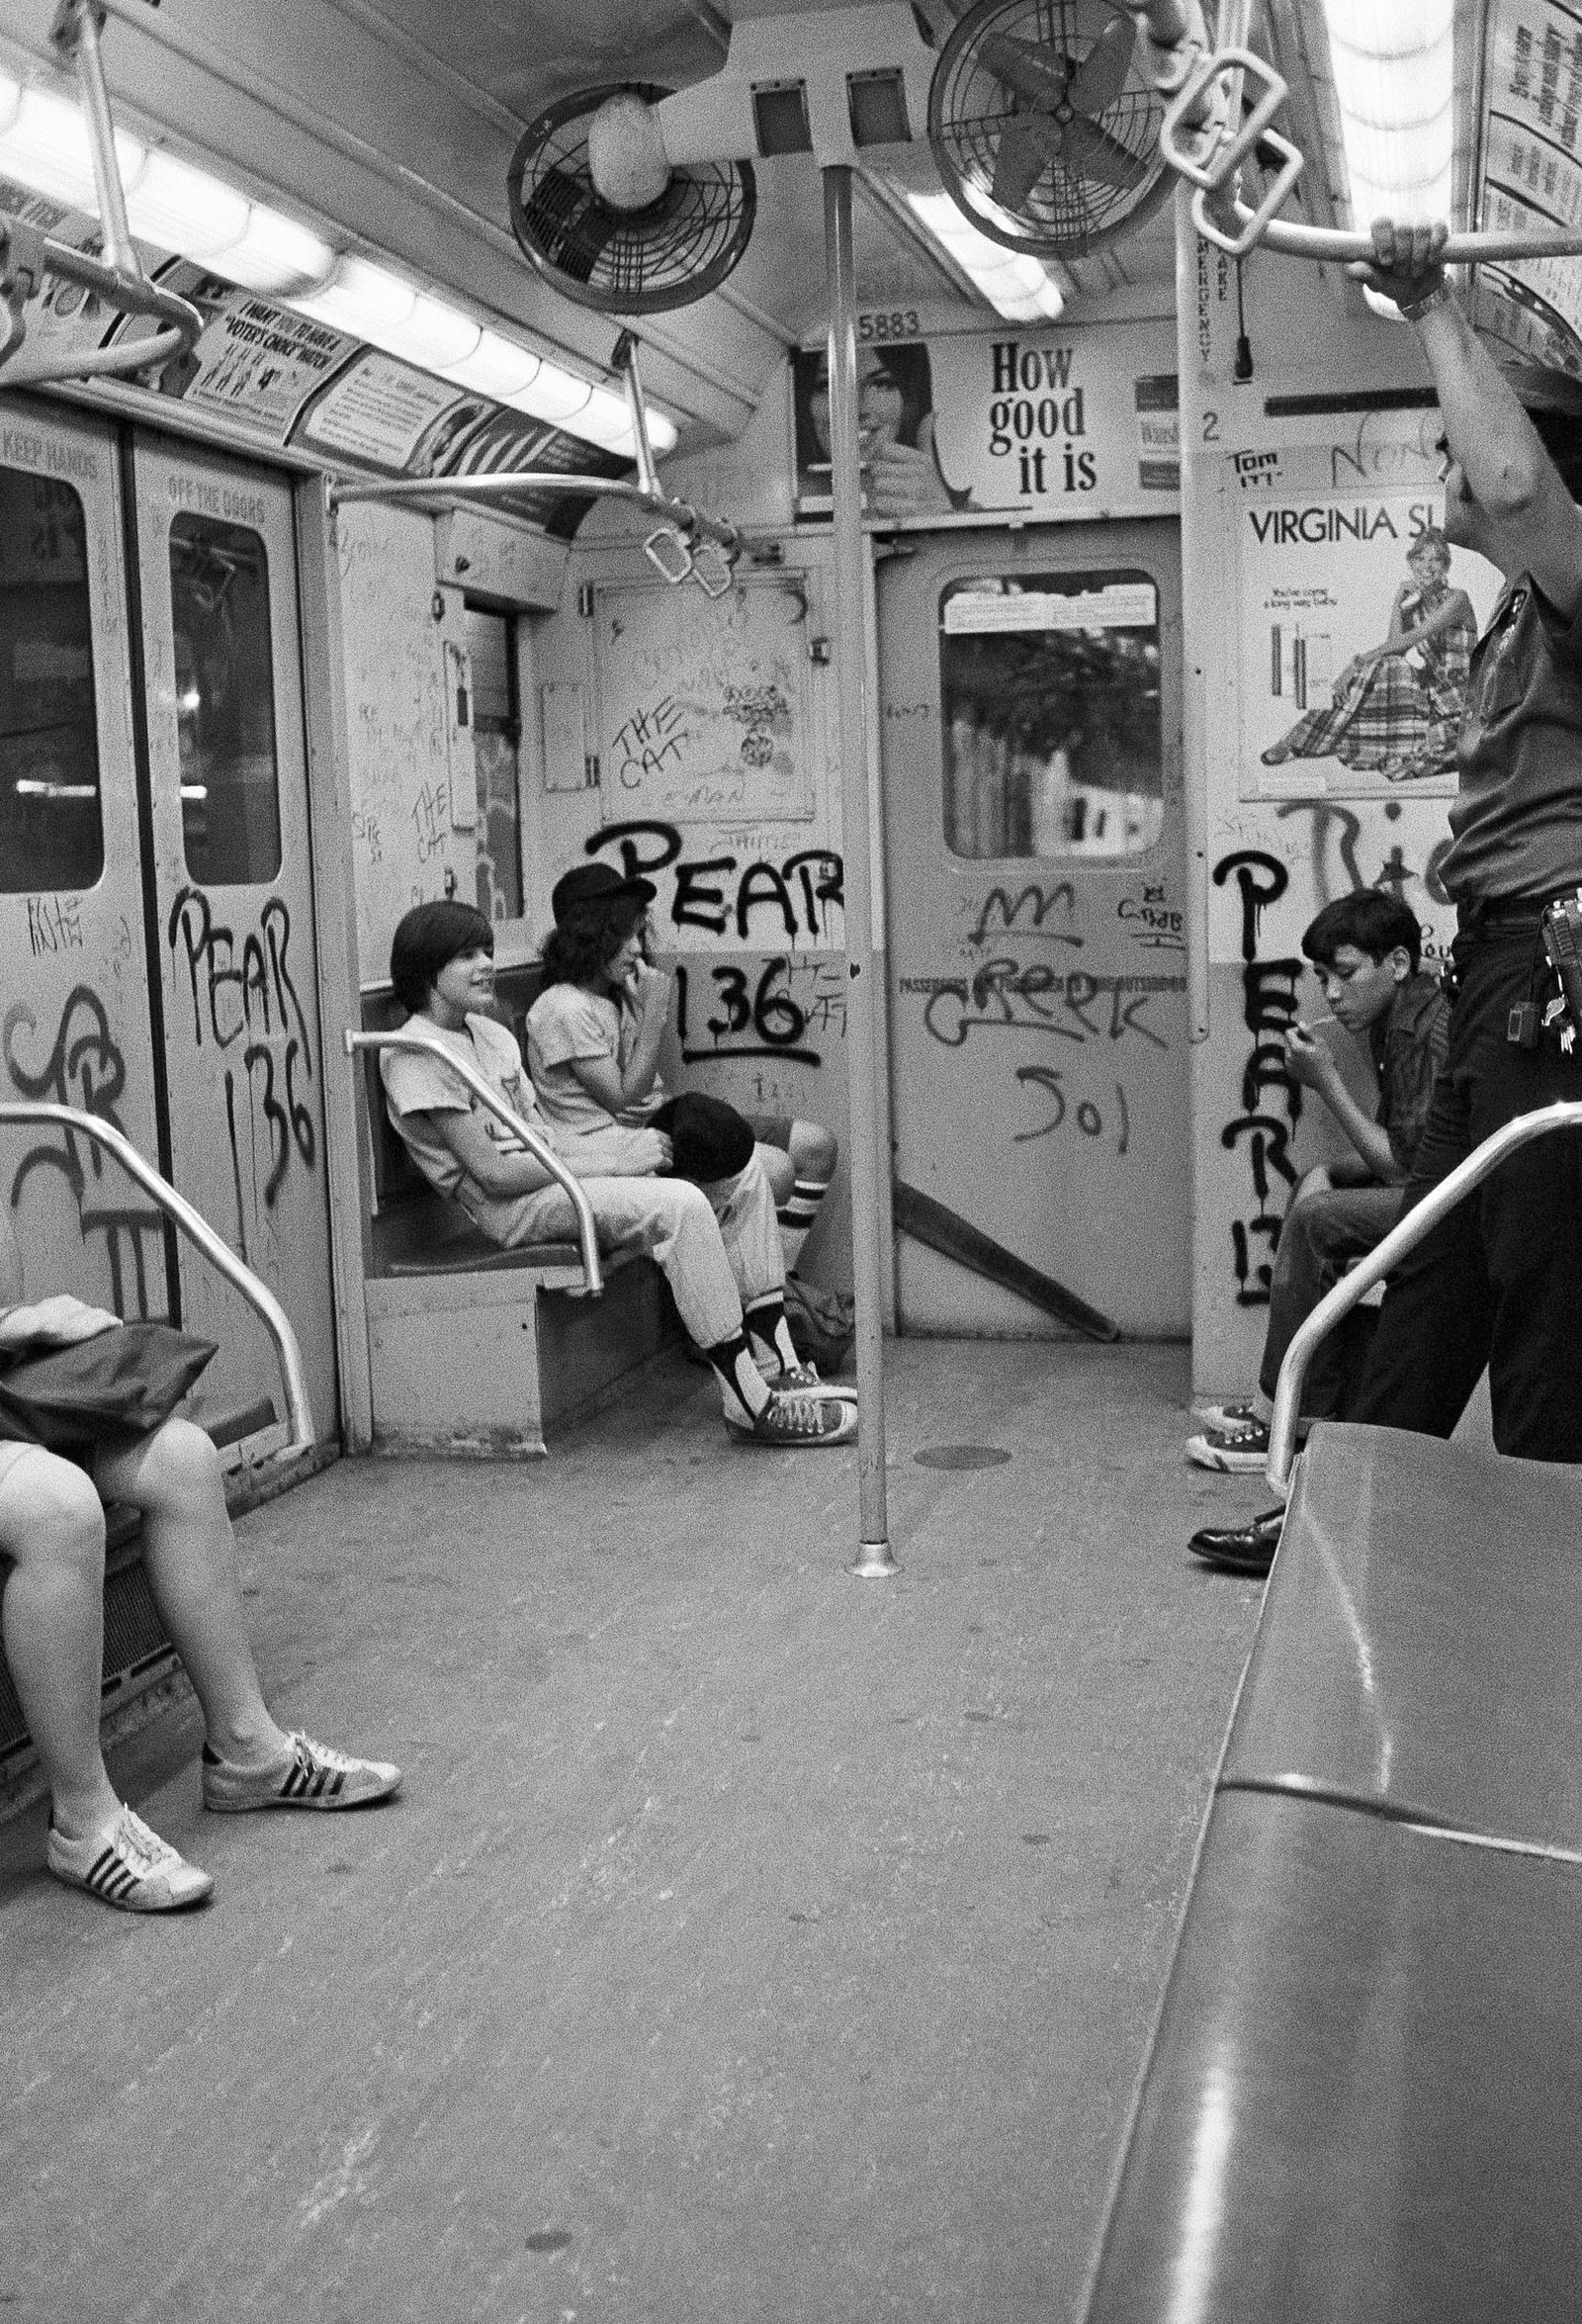 Scenes from the New York City Subway in the 1970s New